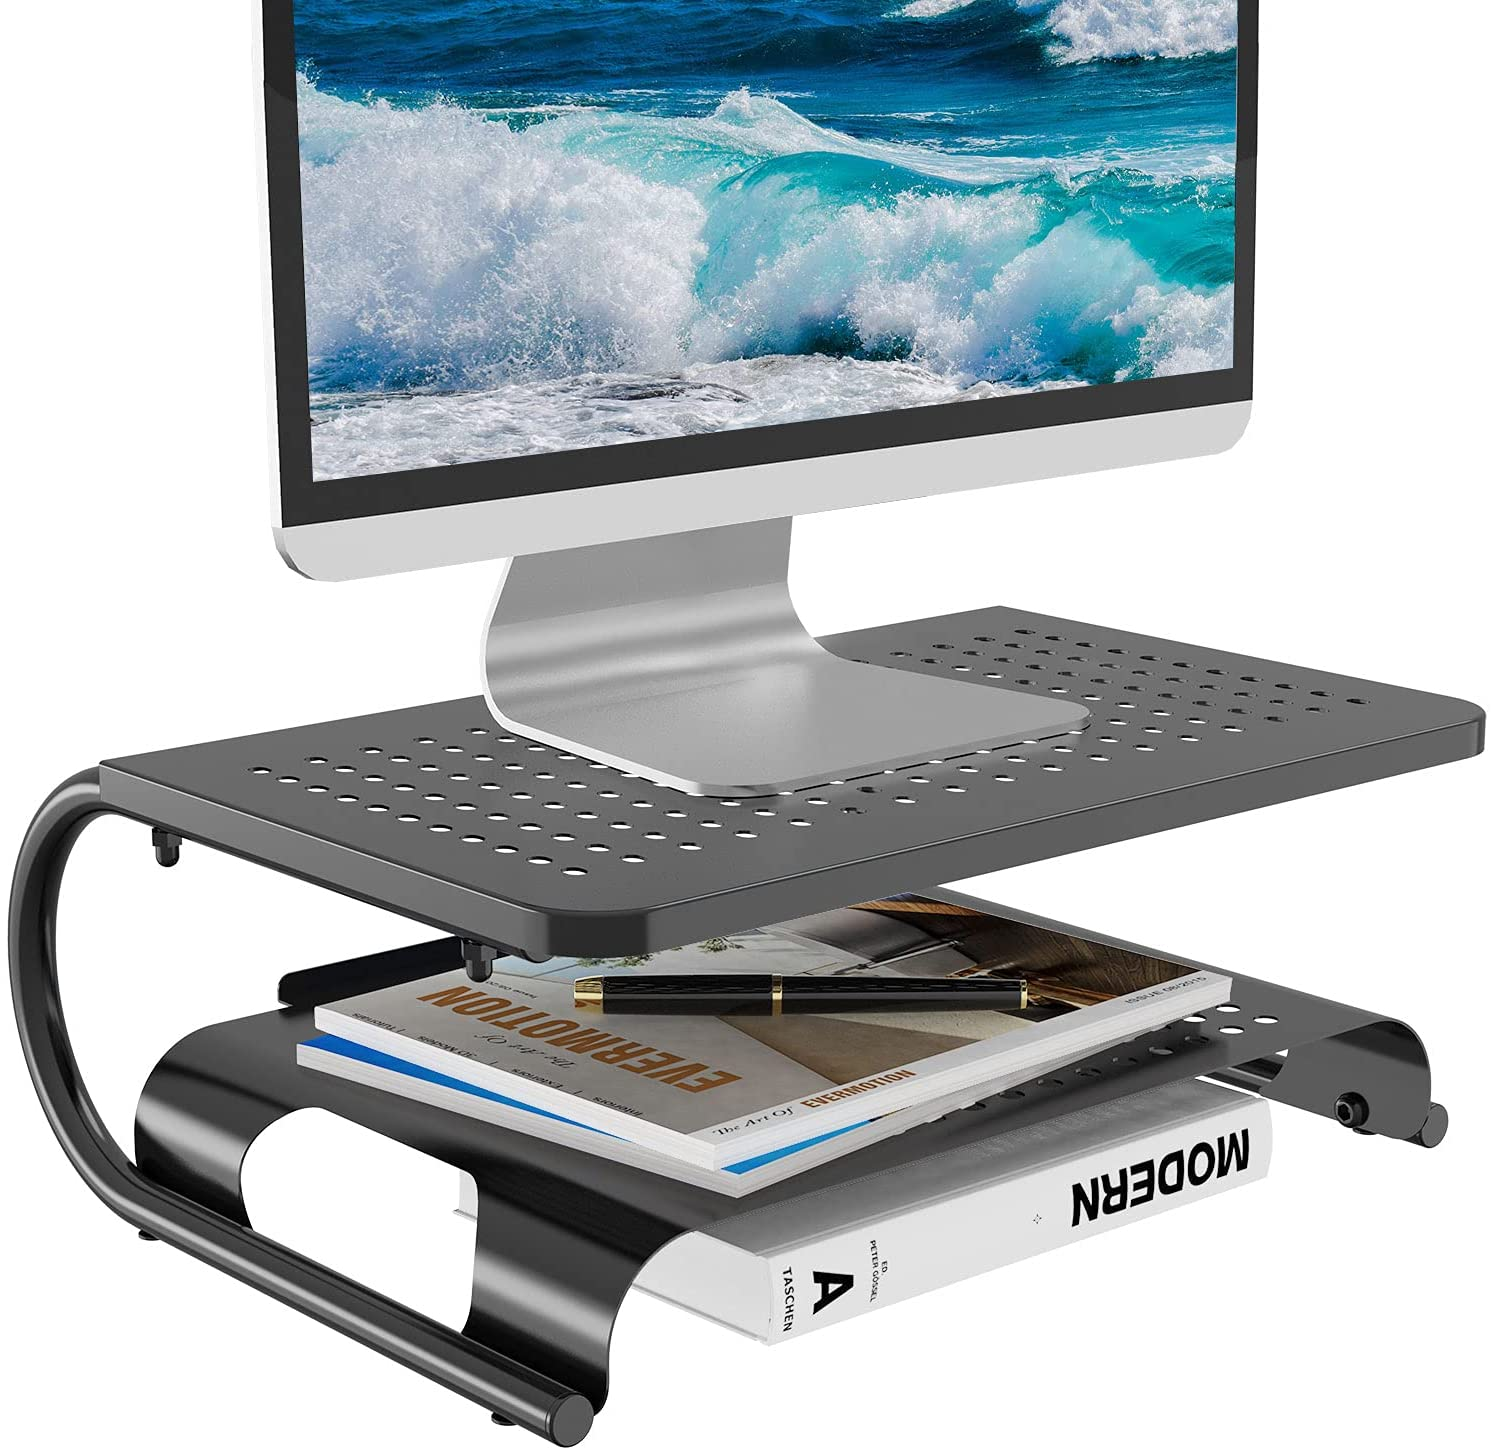 WALI Monitor Riser Desktop Stand with Vented Metal and 2 Tier Desk Organizer Stand for Computer, Laptop, LED, LCD, OLED Flat Screen Display, and Printer (STT001B), Black, 1 Pack